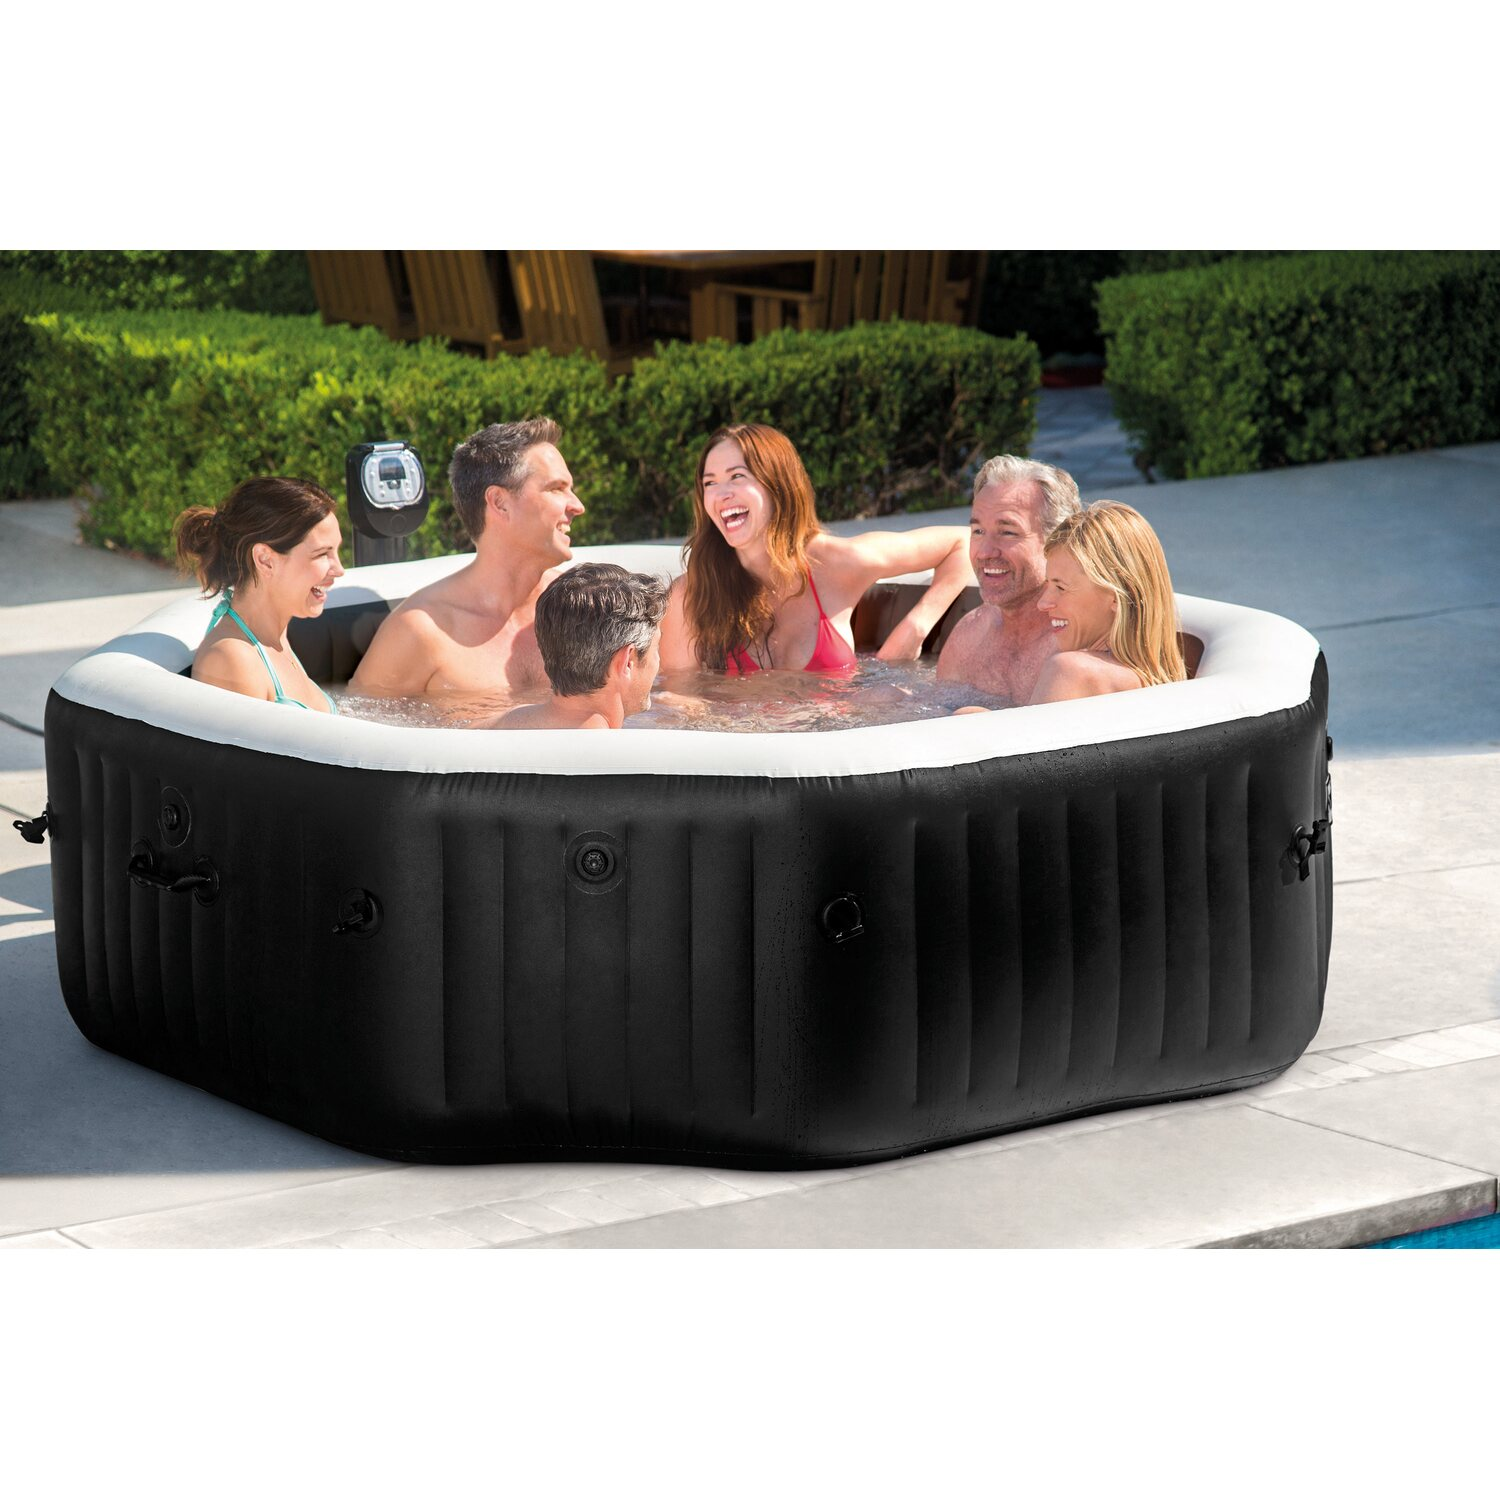 intex whirlpool pure spa octagon bubble jet f r 6 personen 218 cm x 71 kaufen bei obi. Black Bedroom Furniture Sets. Home Design Ideas